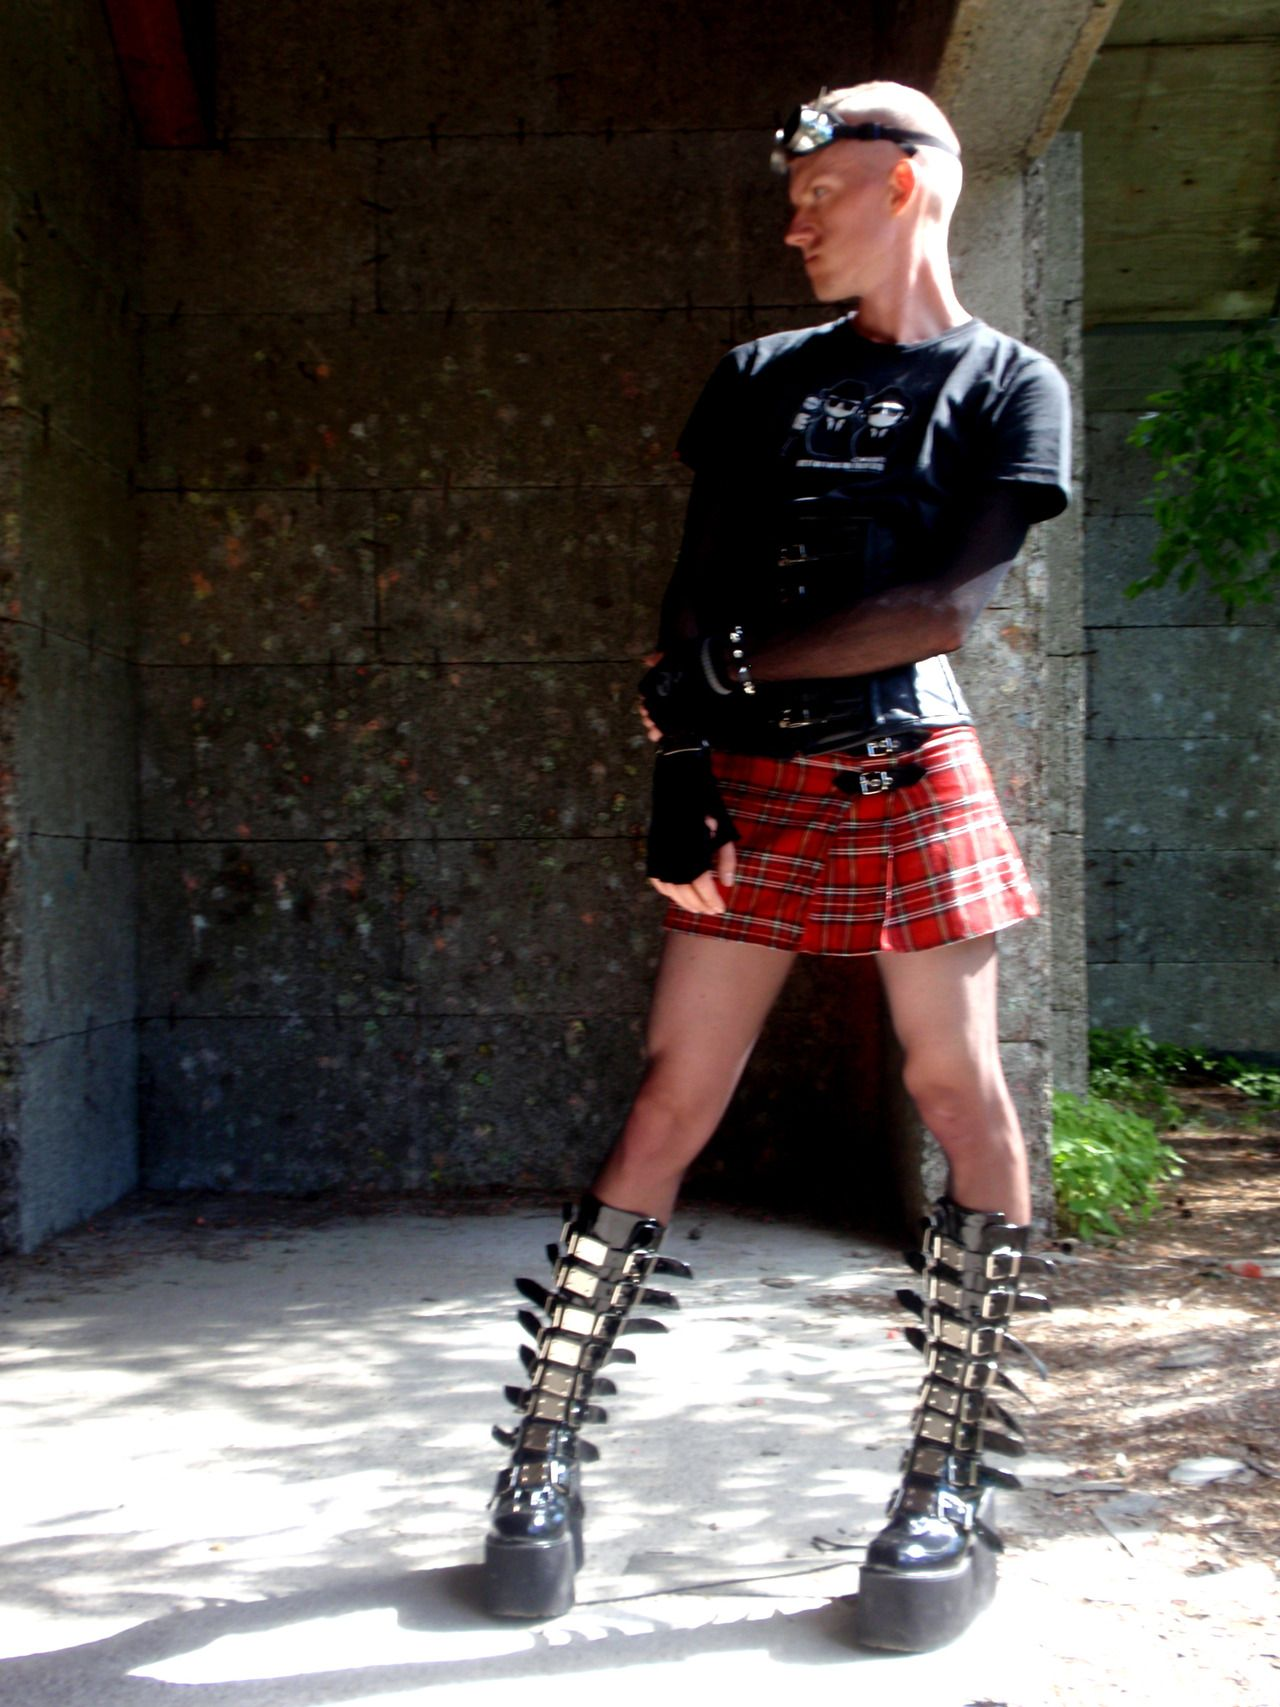 Mini Kilt Seriously This Is An Insult To The Kilt Sorry This